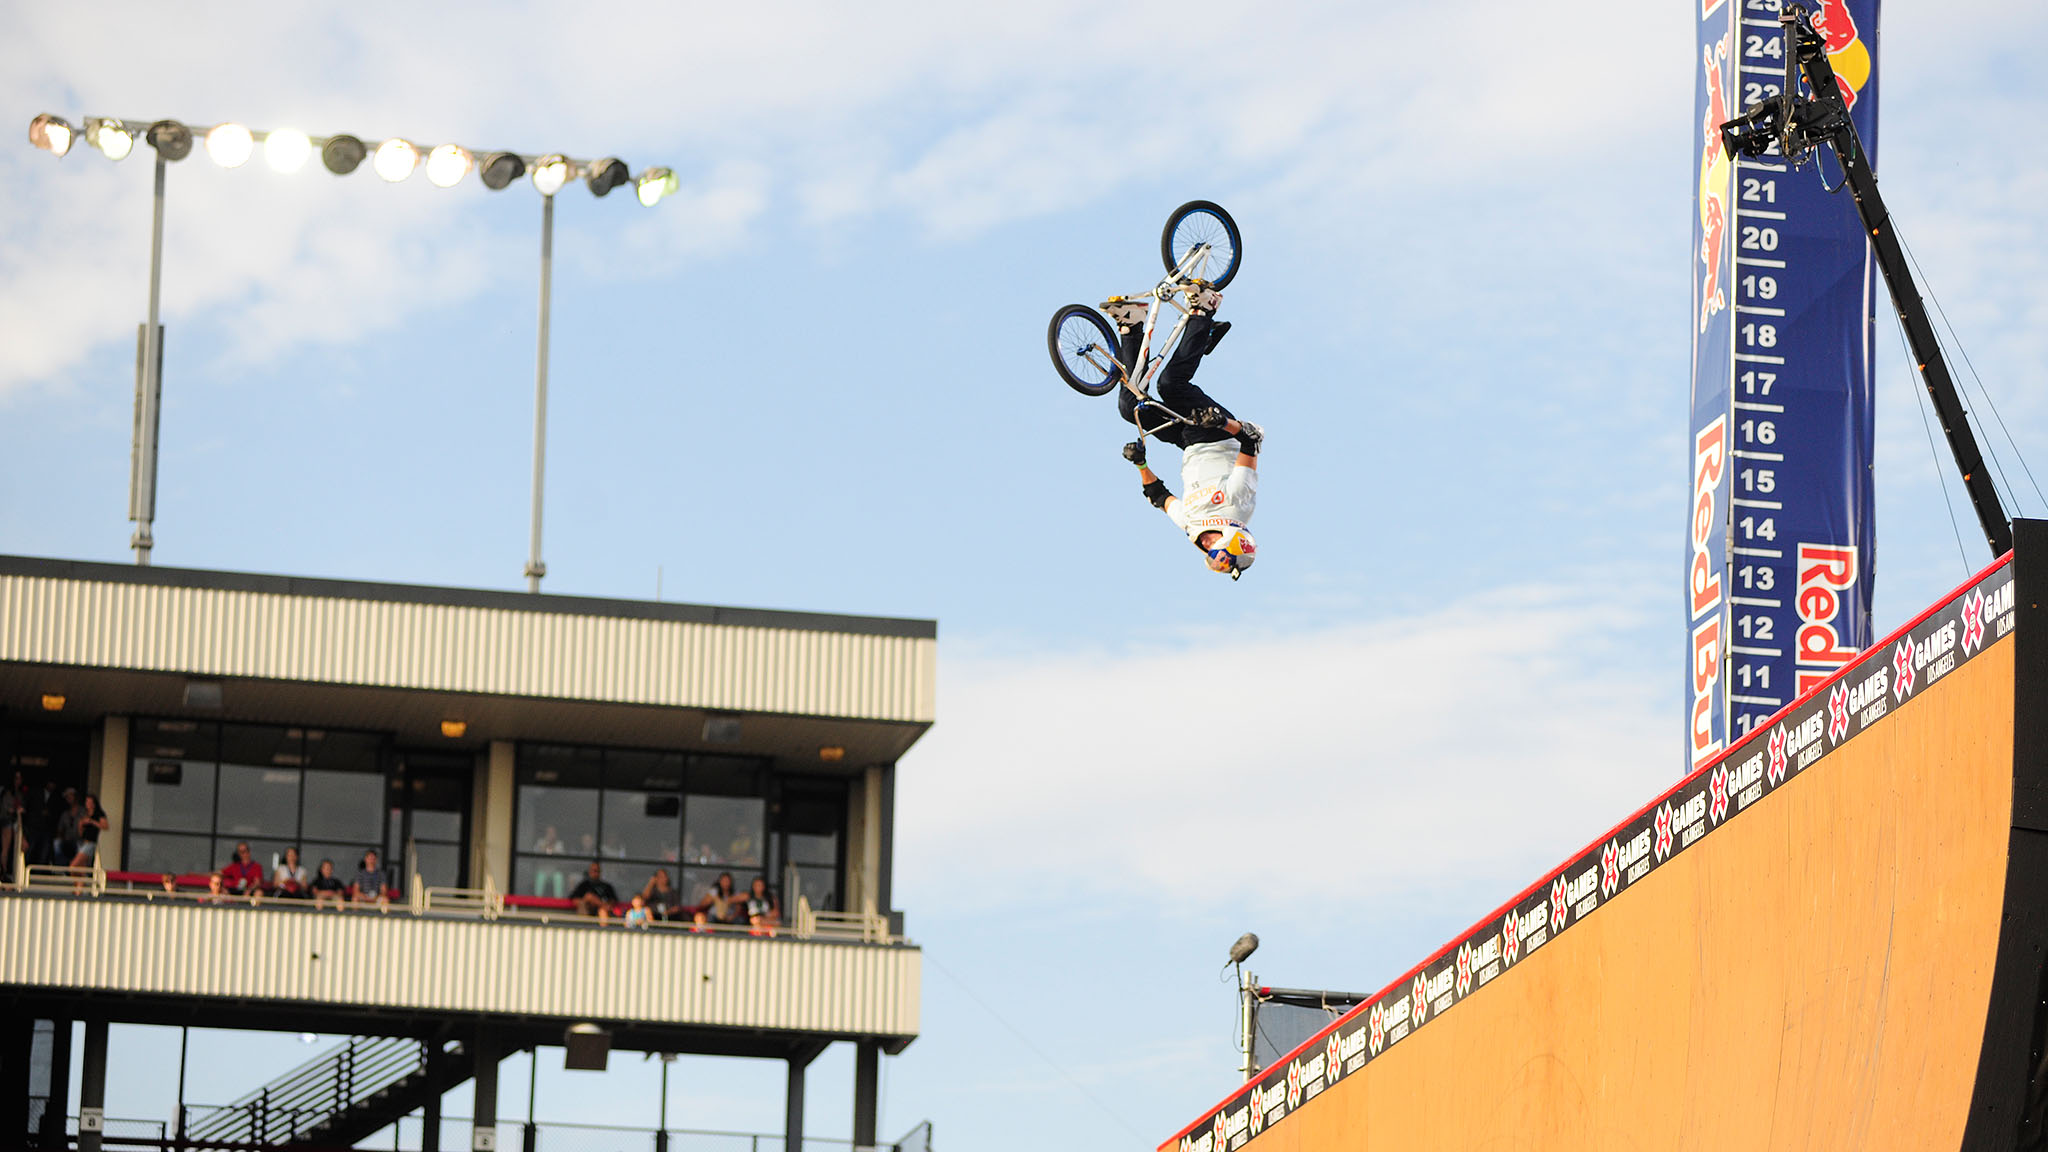 Kevin Robinson competed at the inaugural X Games in 2003 and retired from competition this week in Los Angeles.